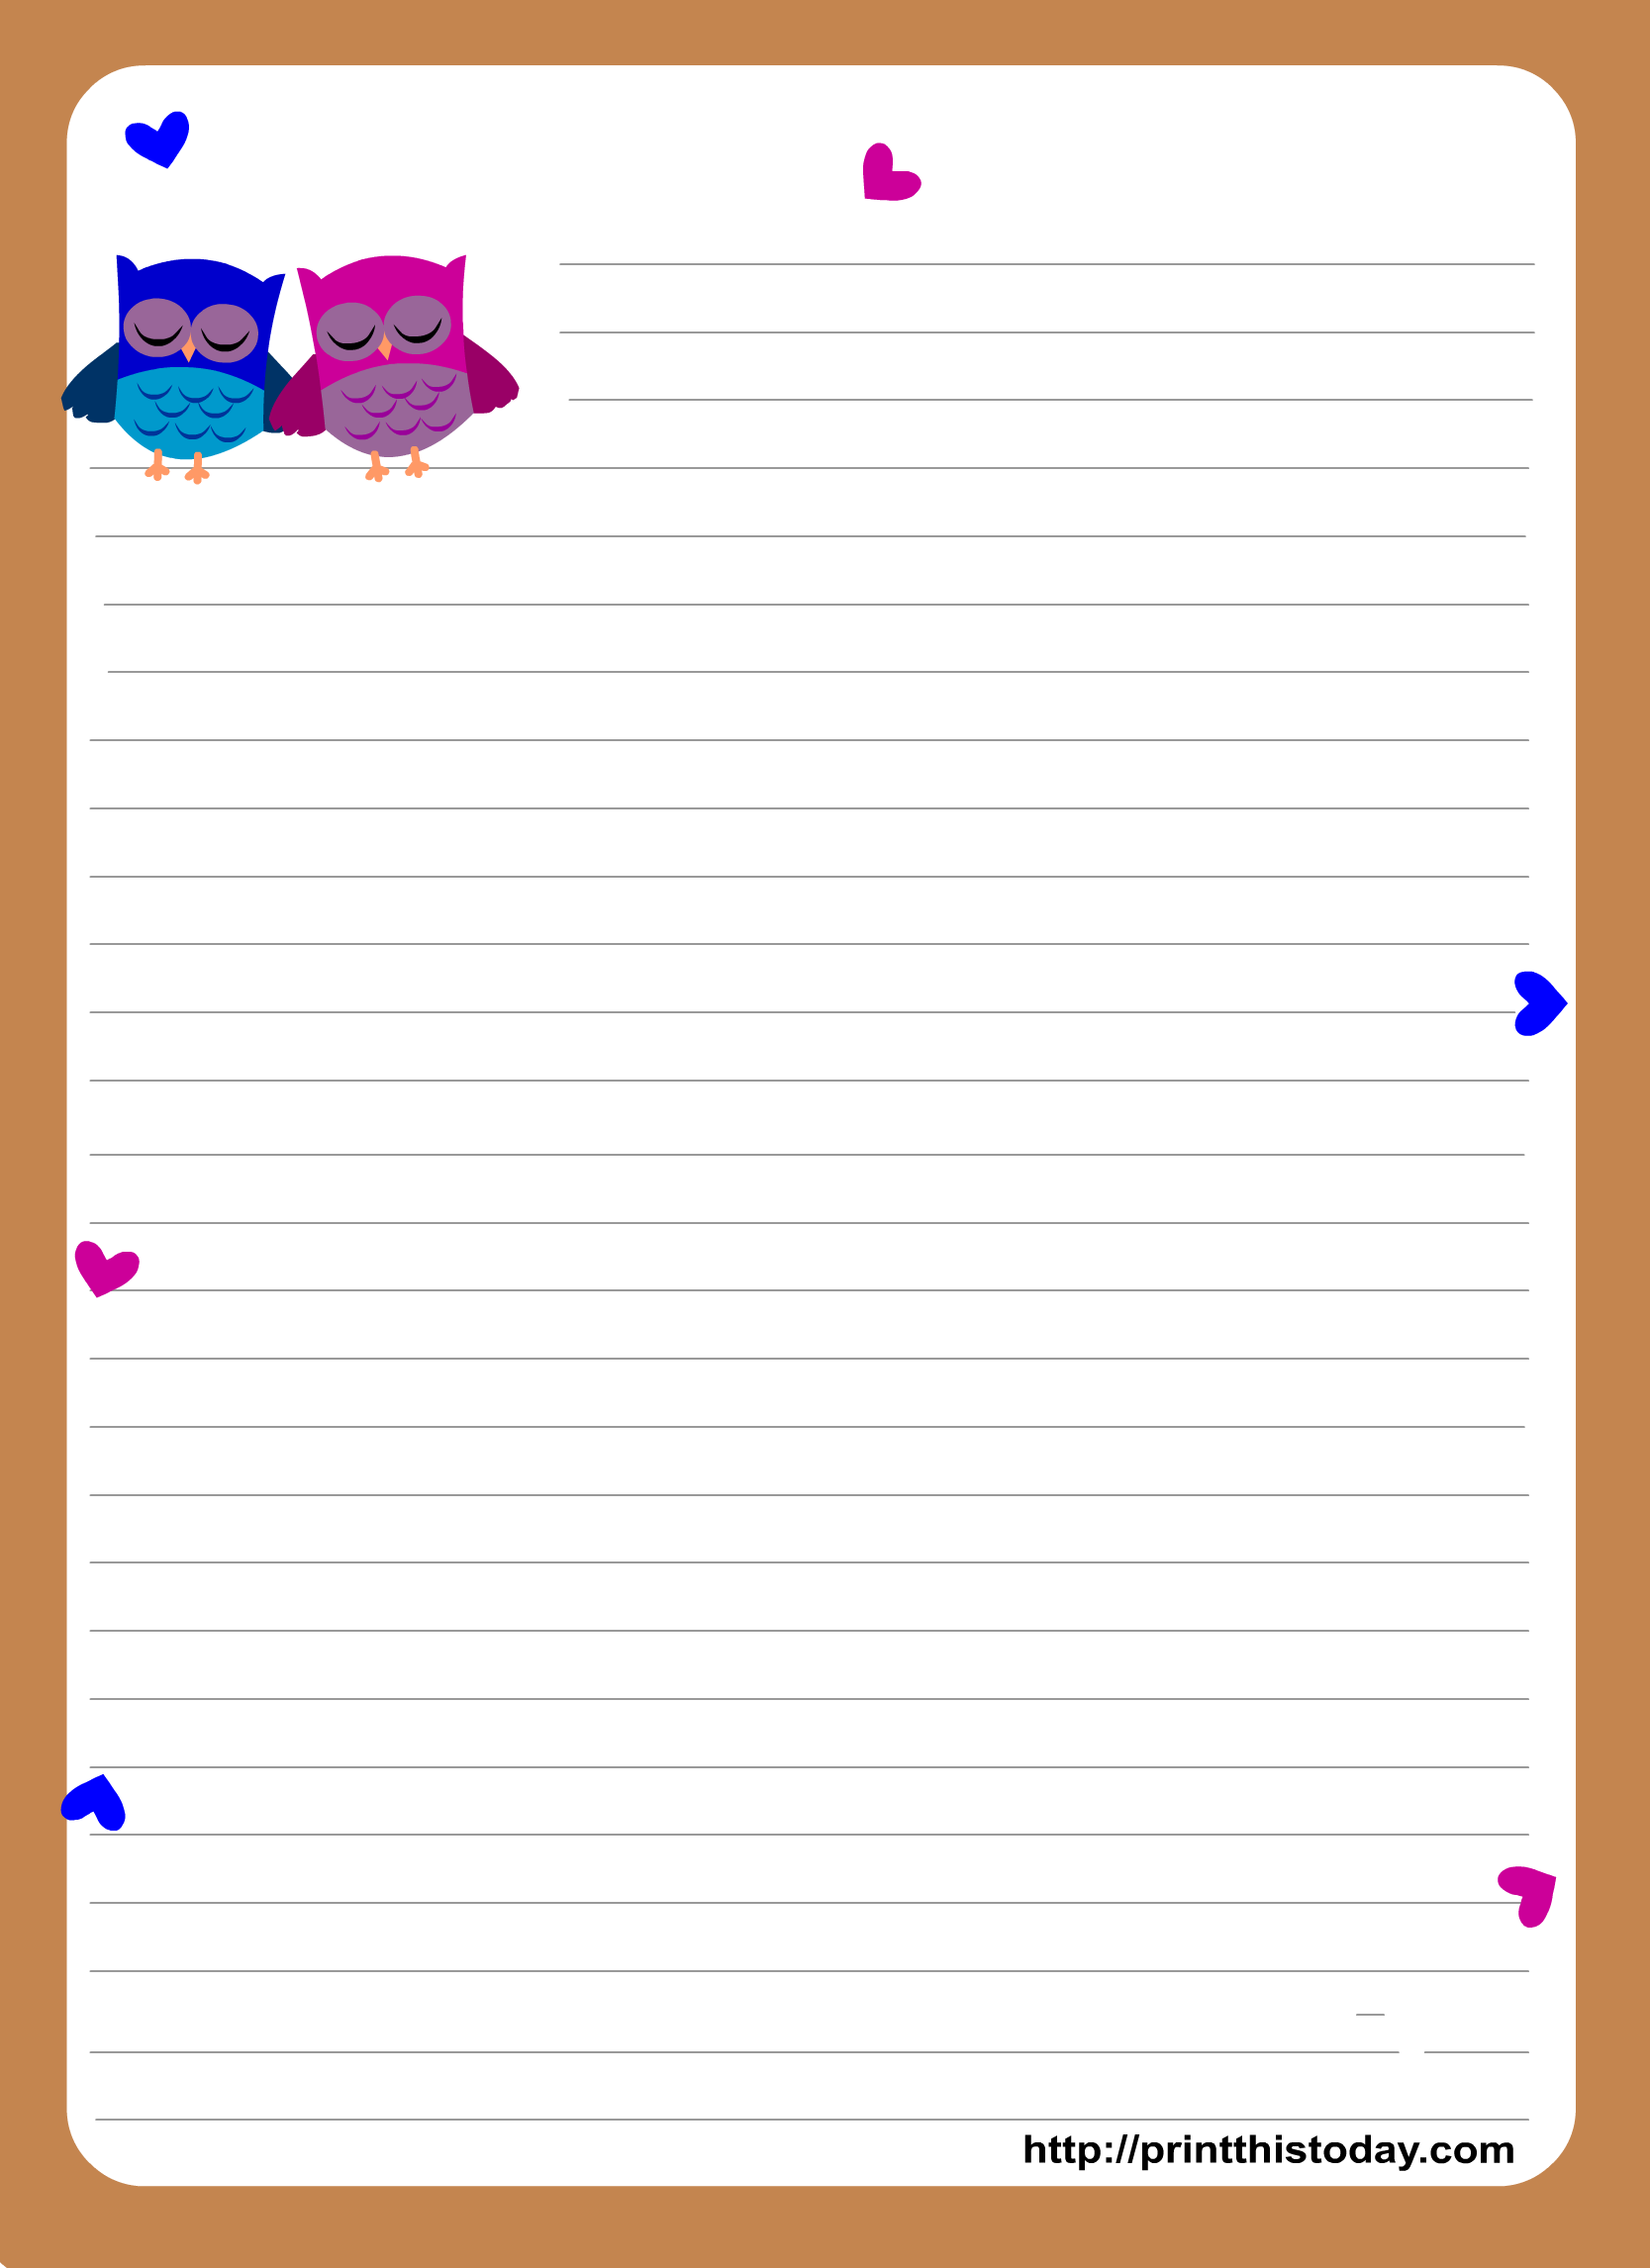 Right clipart letter paper More Stampabili and Free ~